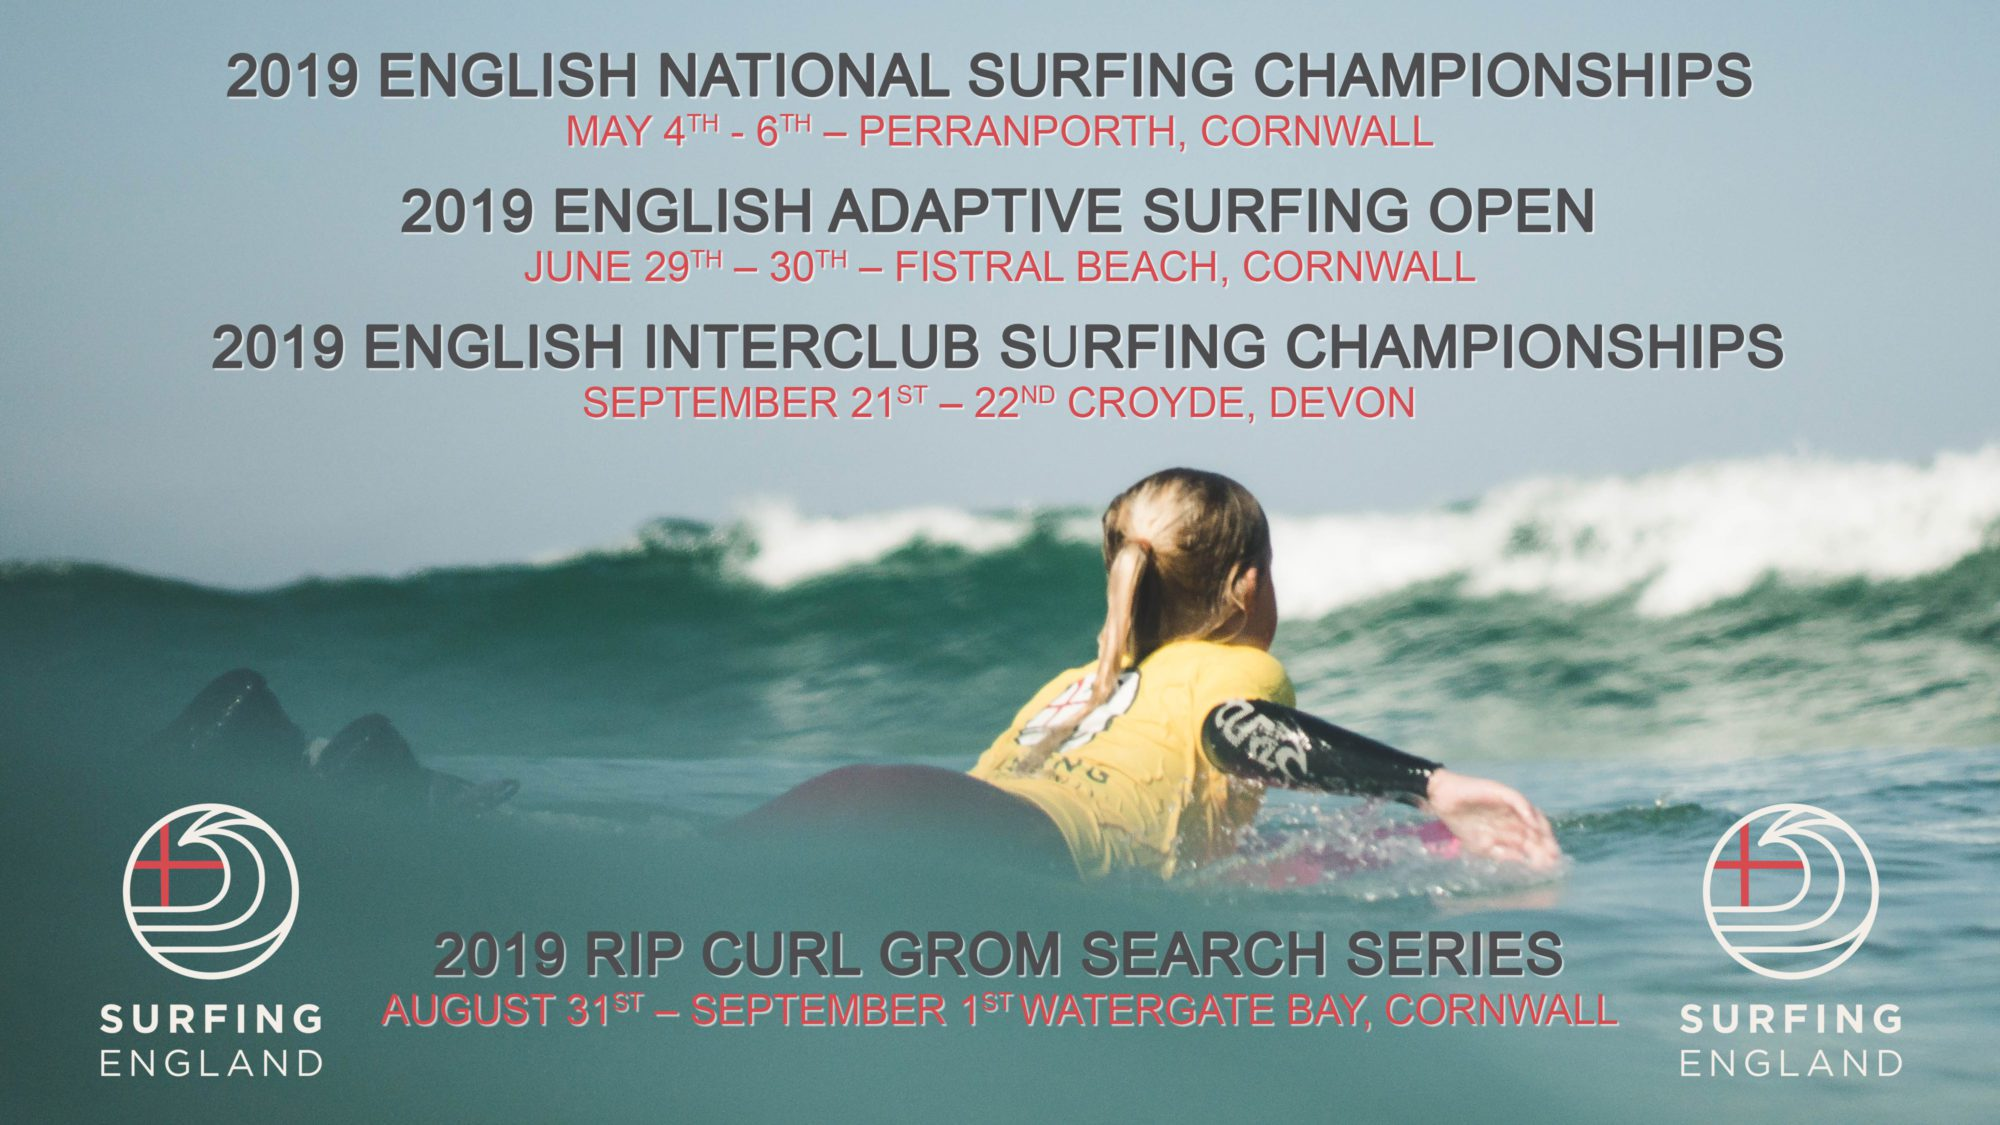 Surfing England 2019 events